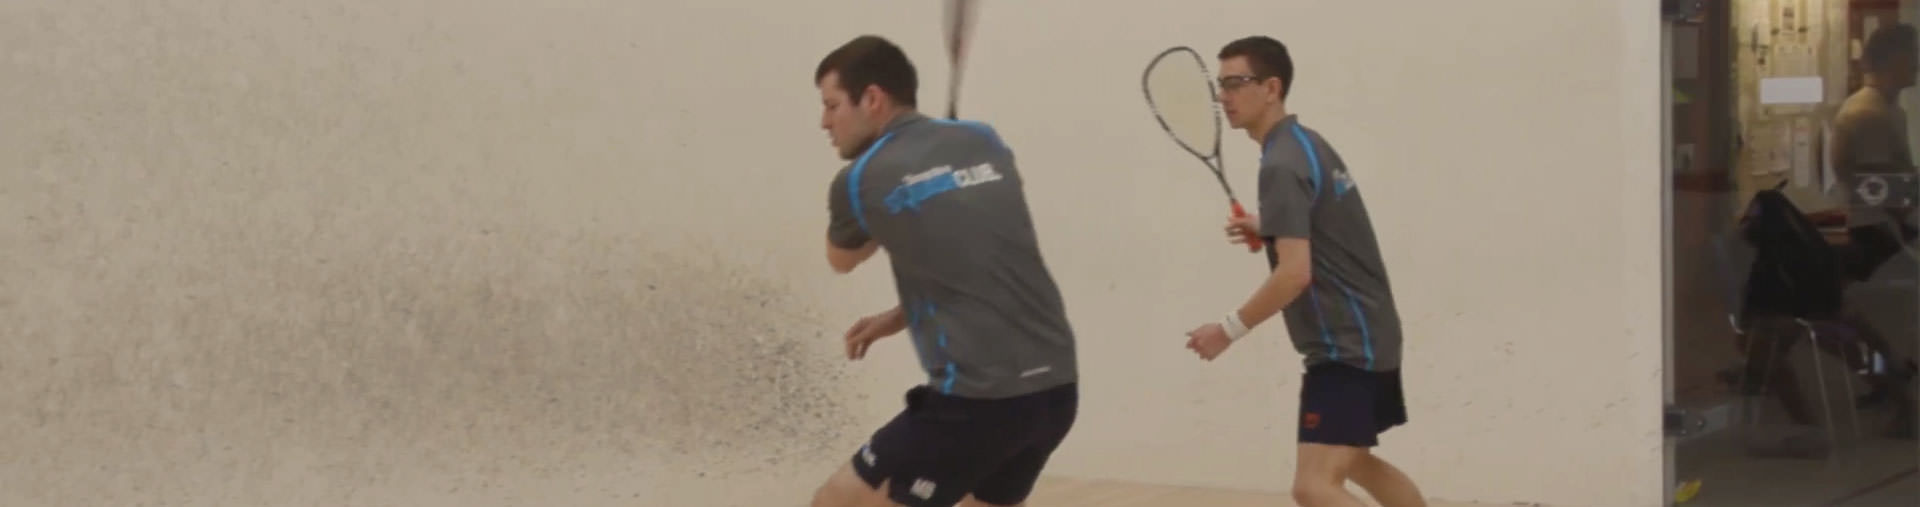 Squash Tips: The Importance of Good Width